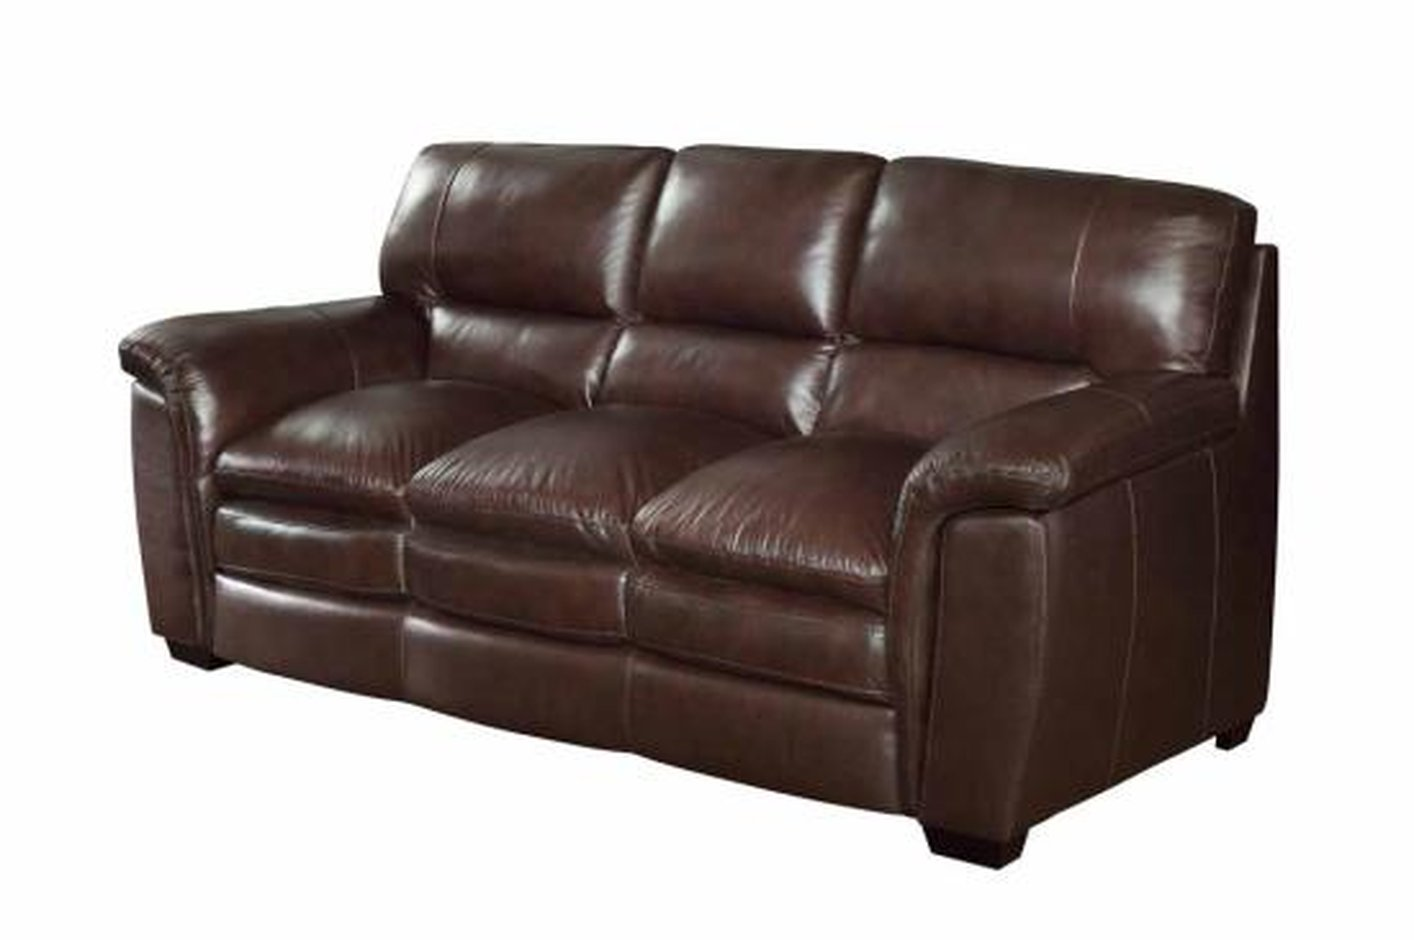 Stylish Burton Brown Lear Sofa Brown Lear Sofa Furniture Outlet Los Angeles Ca Brown Lear Sofa Sectional Brown Lear Sofa Ikea houzz 01 Brown Leather Sofa